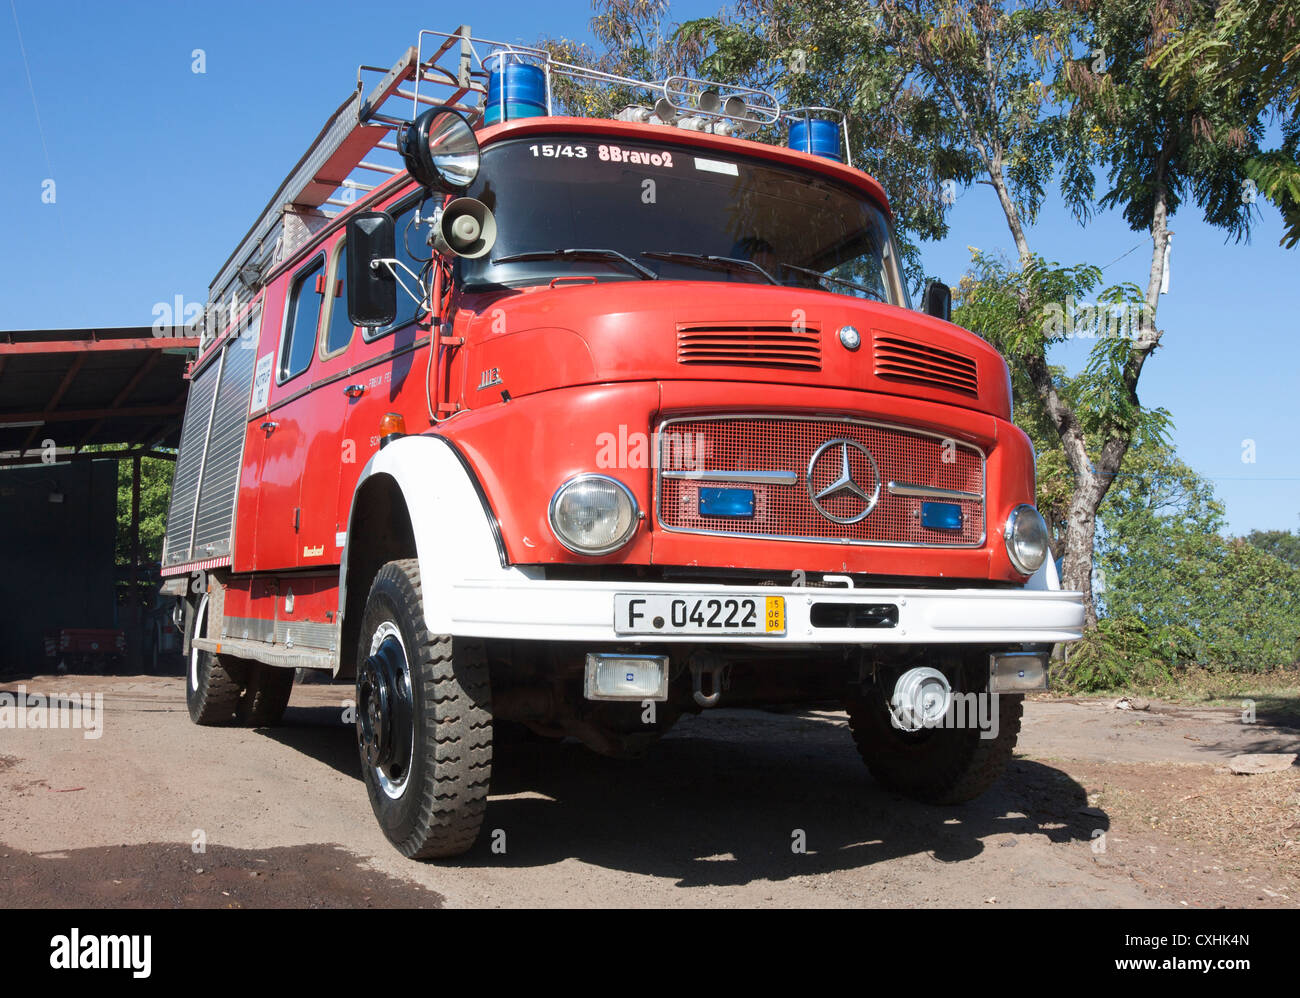 Vintage 1960s Mercedes 1113 fire truck still in front line service will the Volunteer Fire Department at Grenada - Stock Image